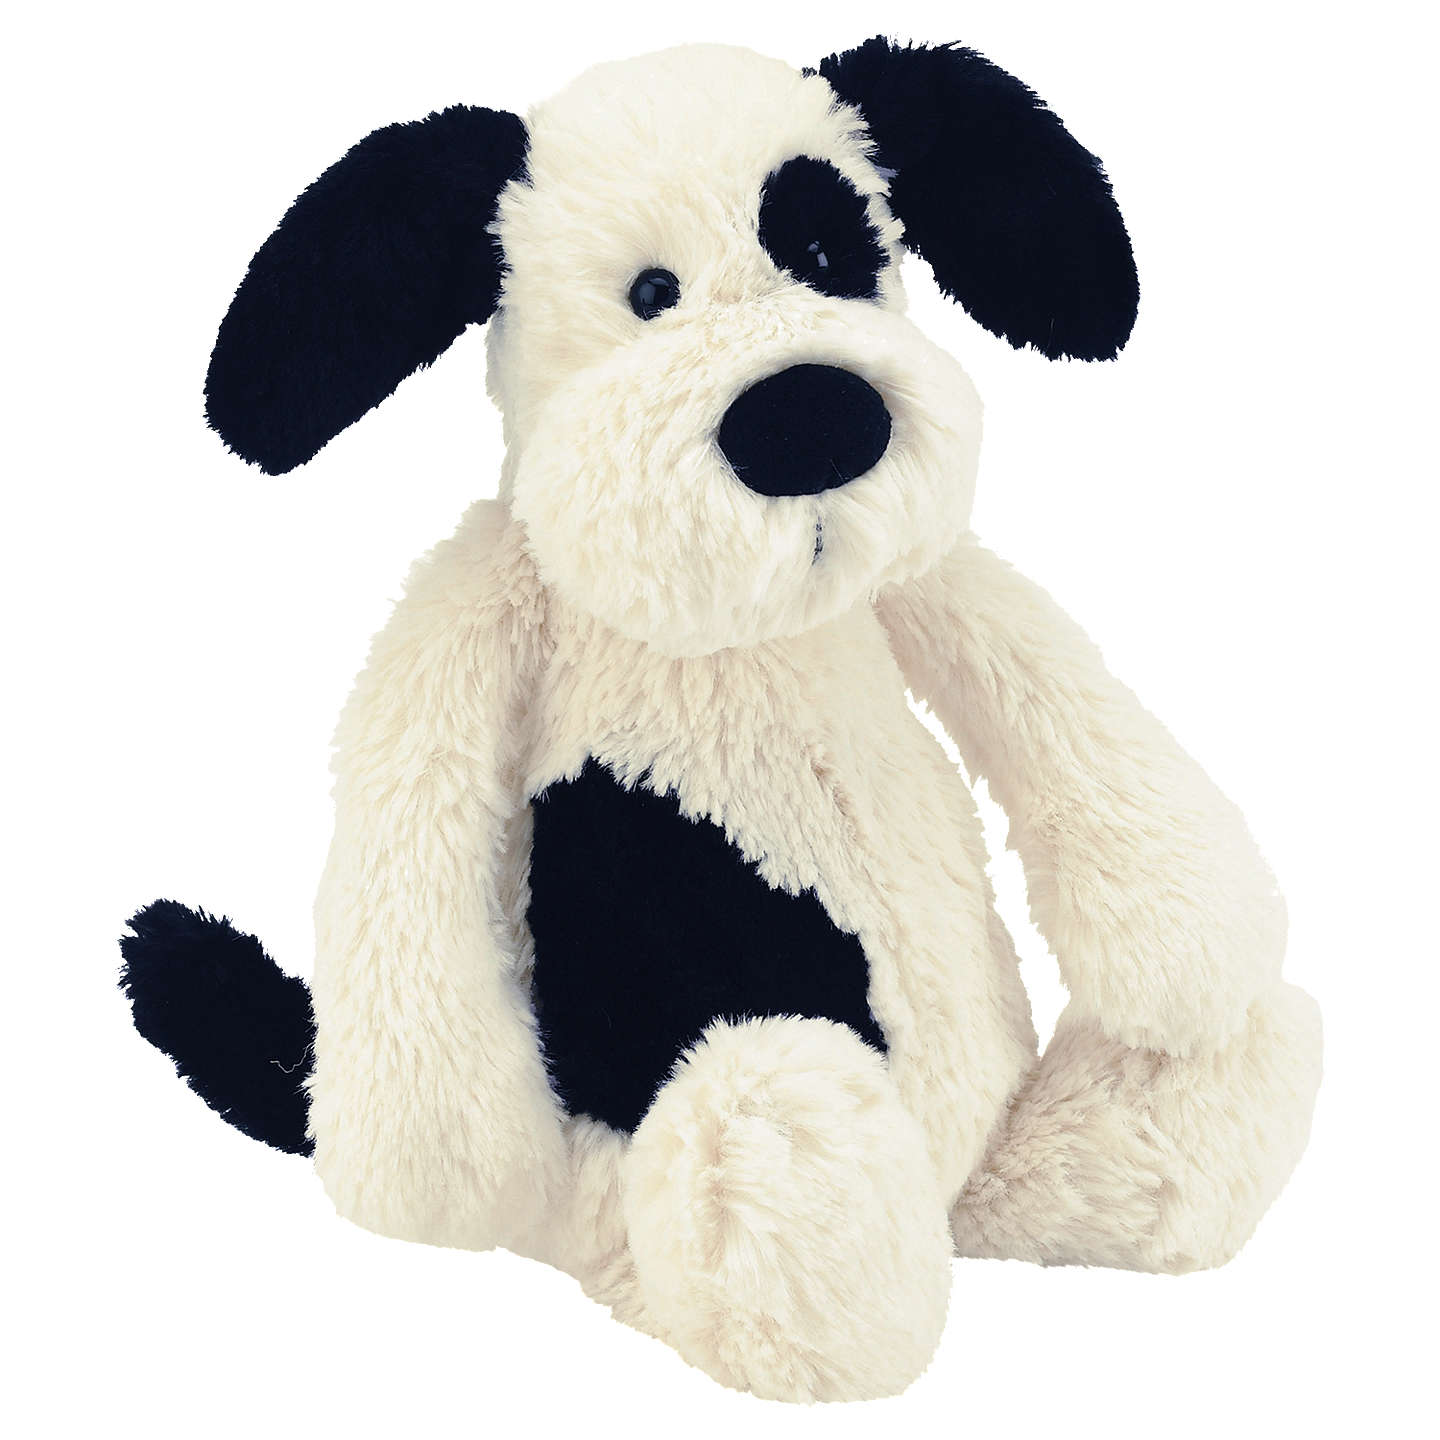 BuyJellycat Bashful Puppy Soft Toy, Medium, Black/White Online at johnlewis.com